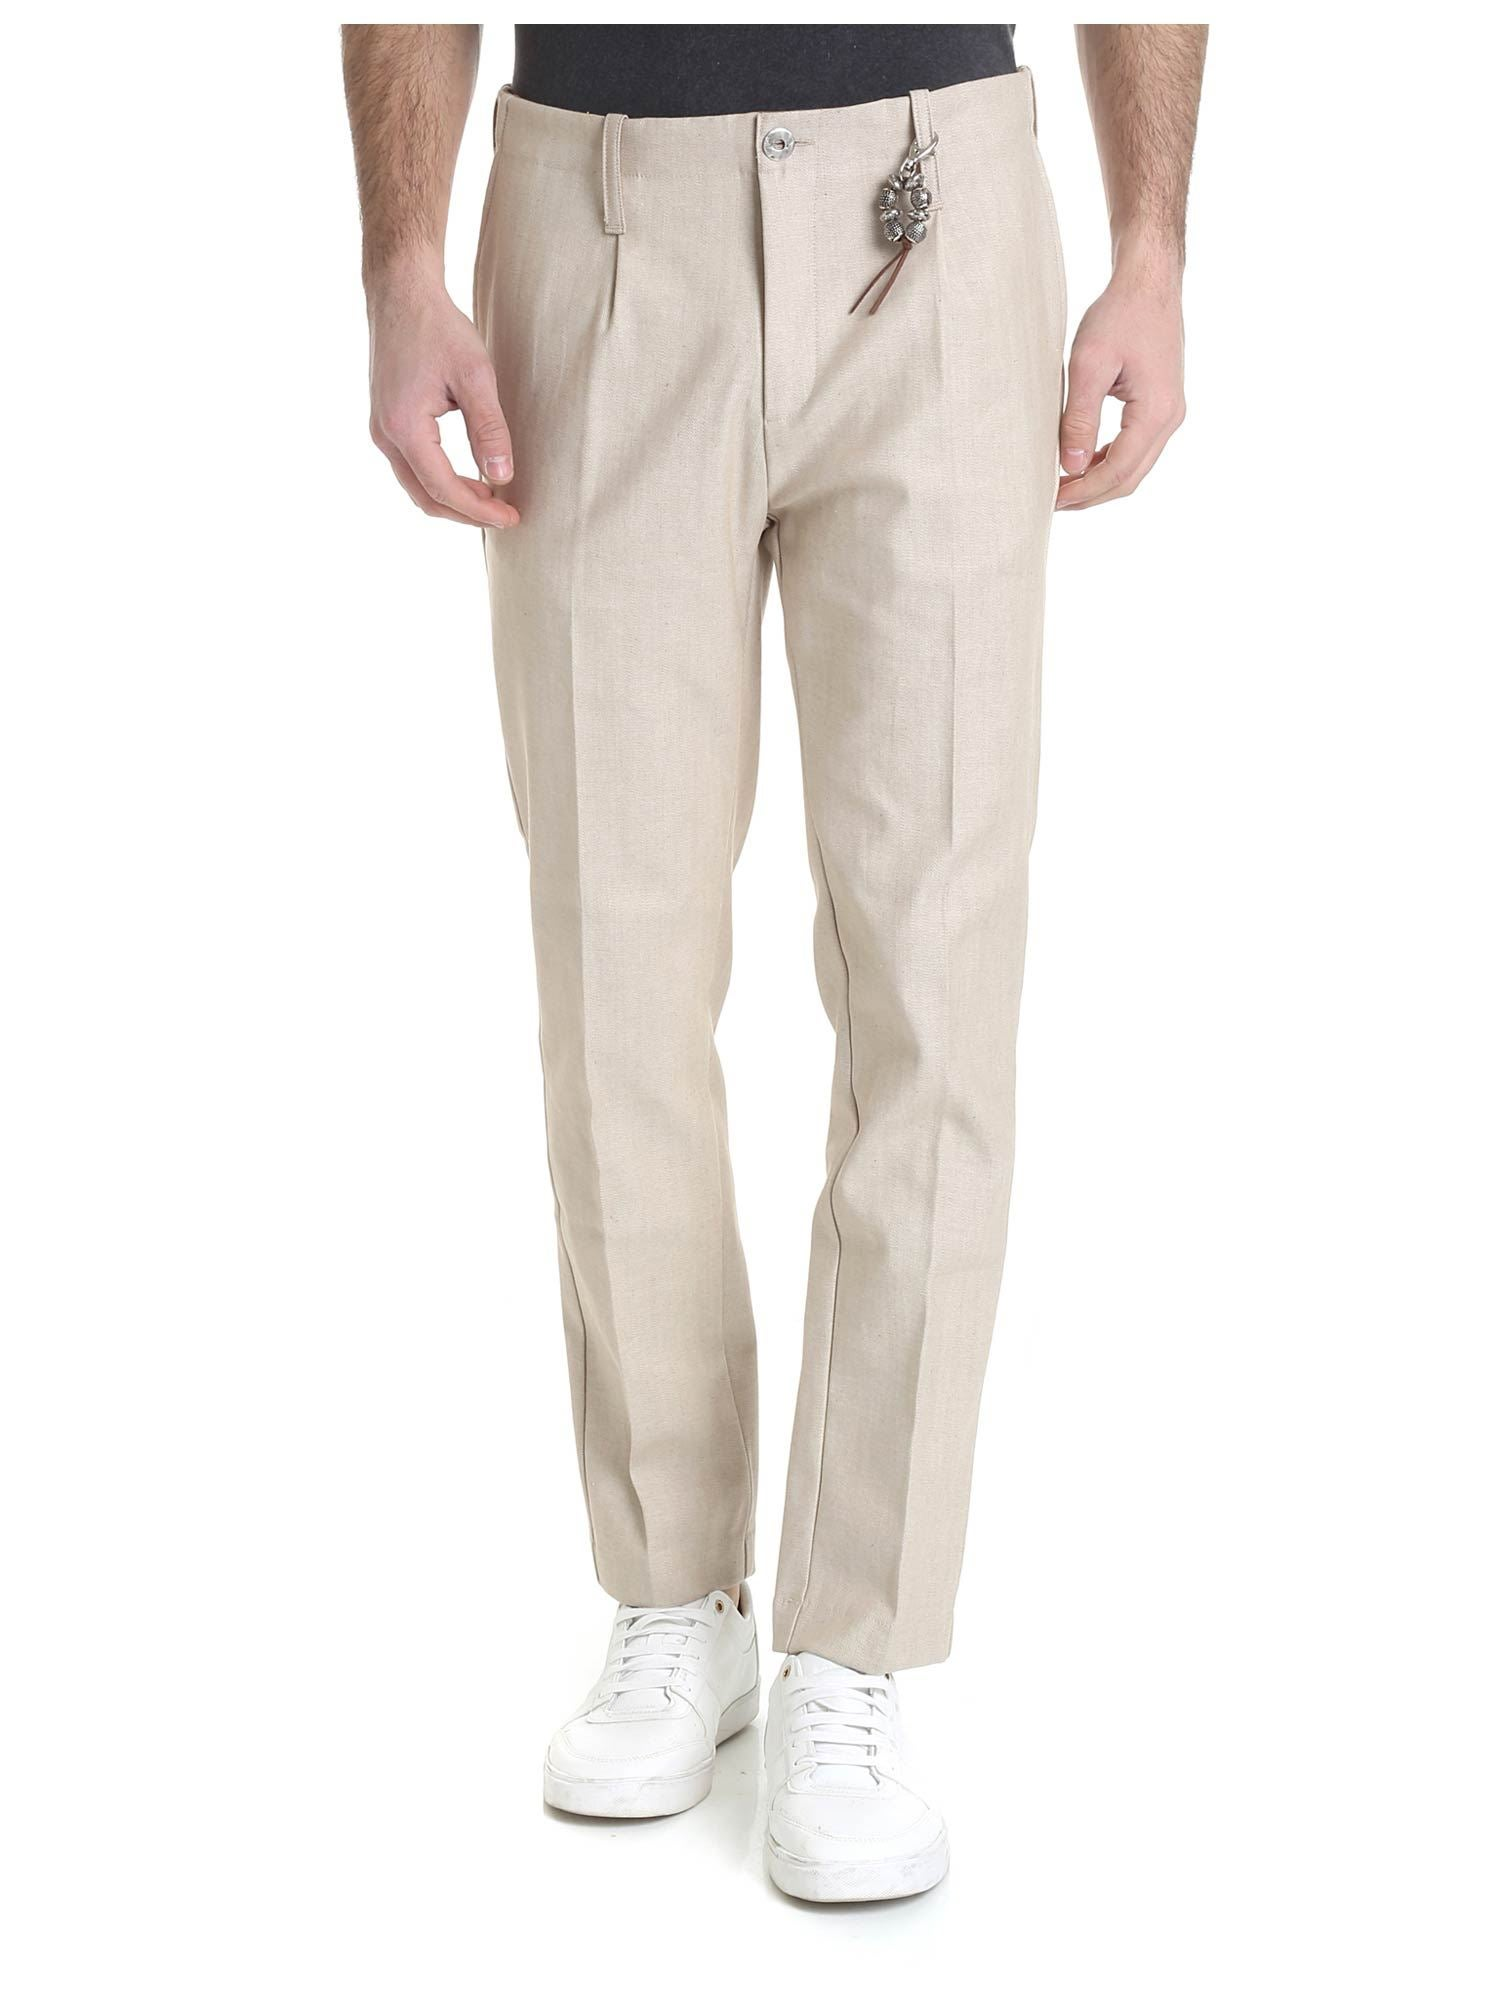 Image of Pantalone in denim beige 1 pince R92 D-BE